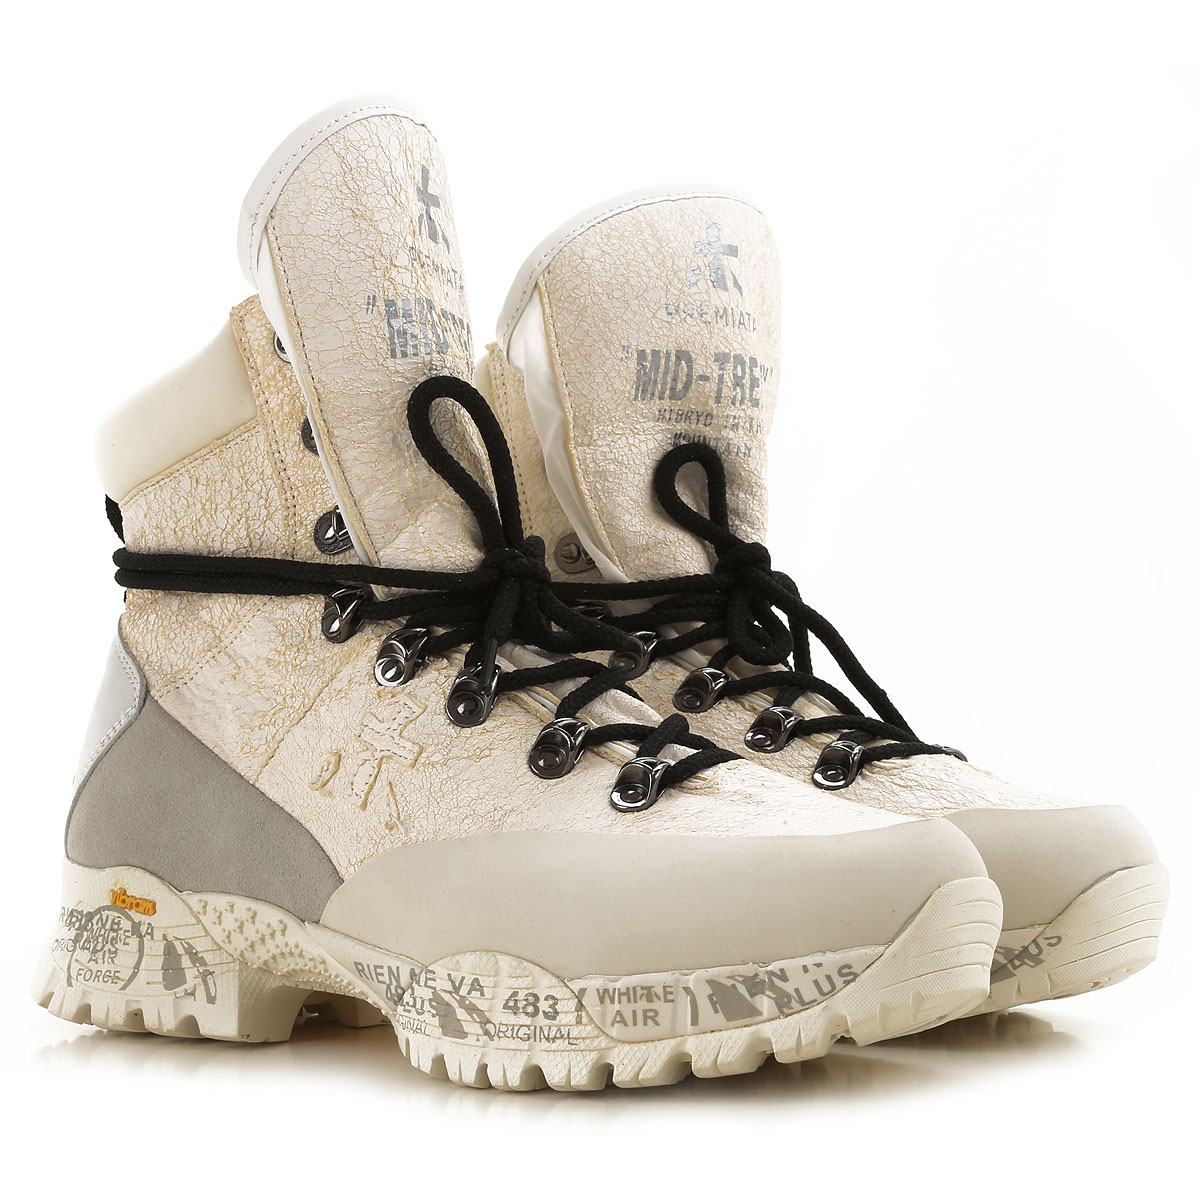 Premiata Boots for Women, Booties On Sale, White, Leather, 2019, 6 7 9